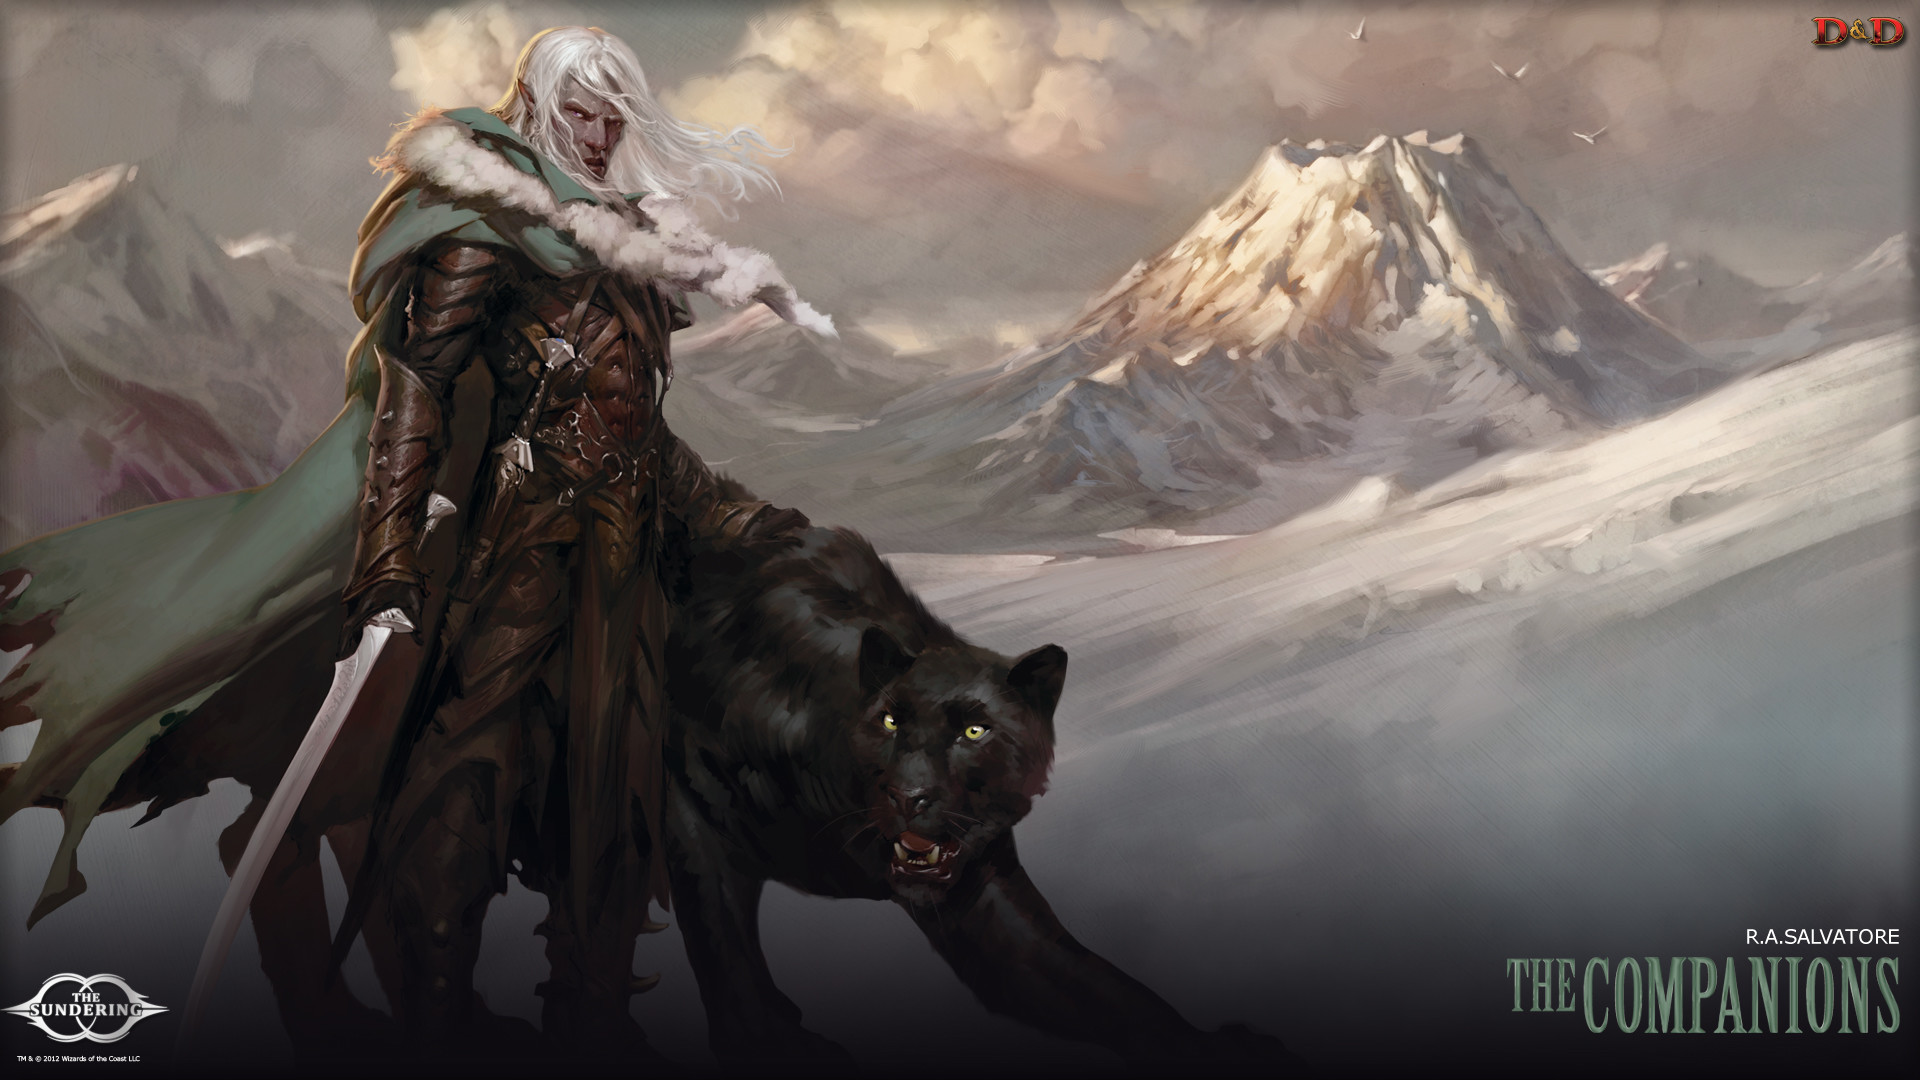 Drizzt Wallpaper Dungeons & dragons: tyranny of